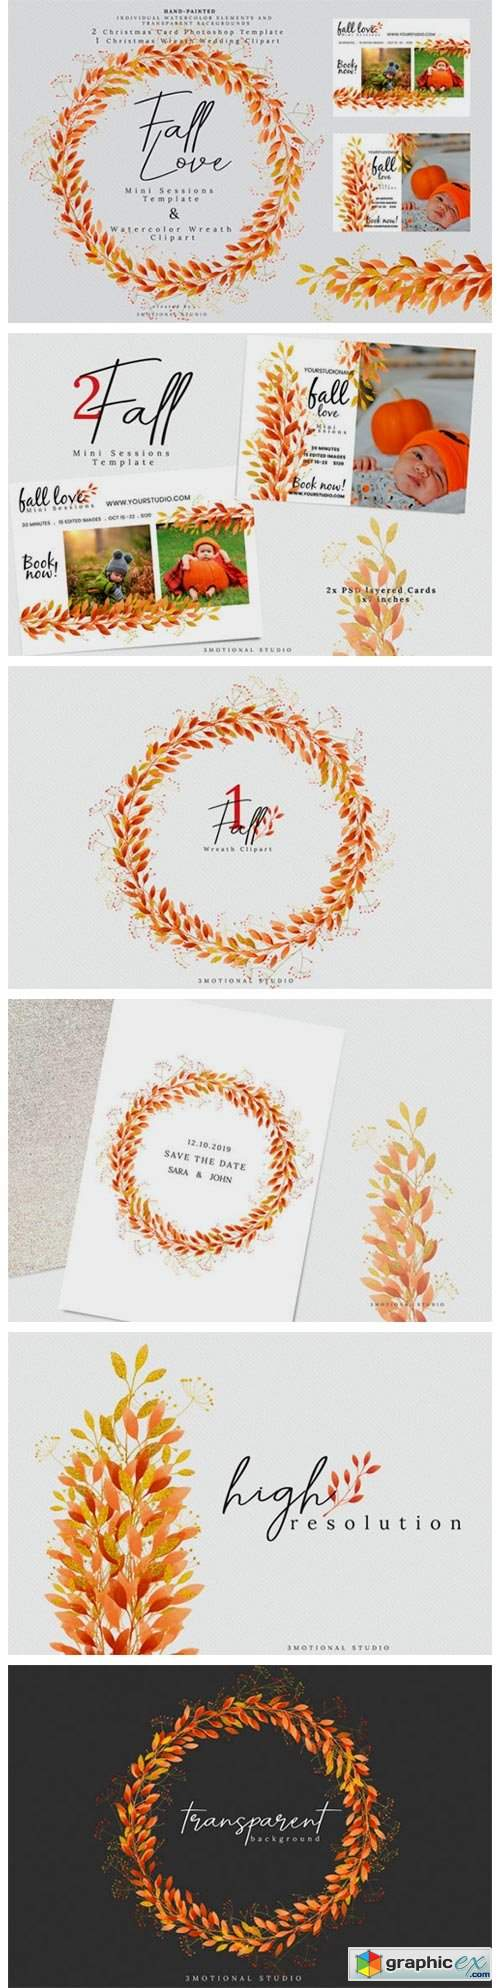 Fall Love Mini Sessions Template